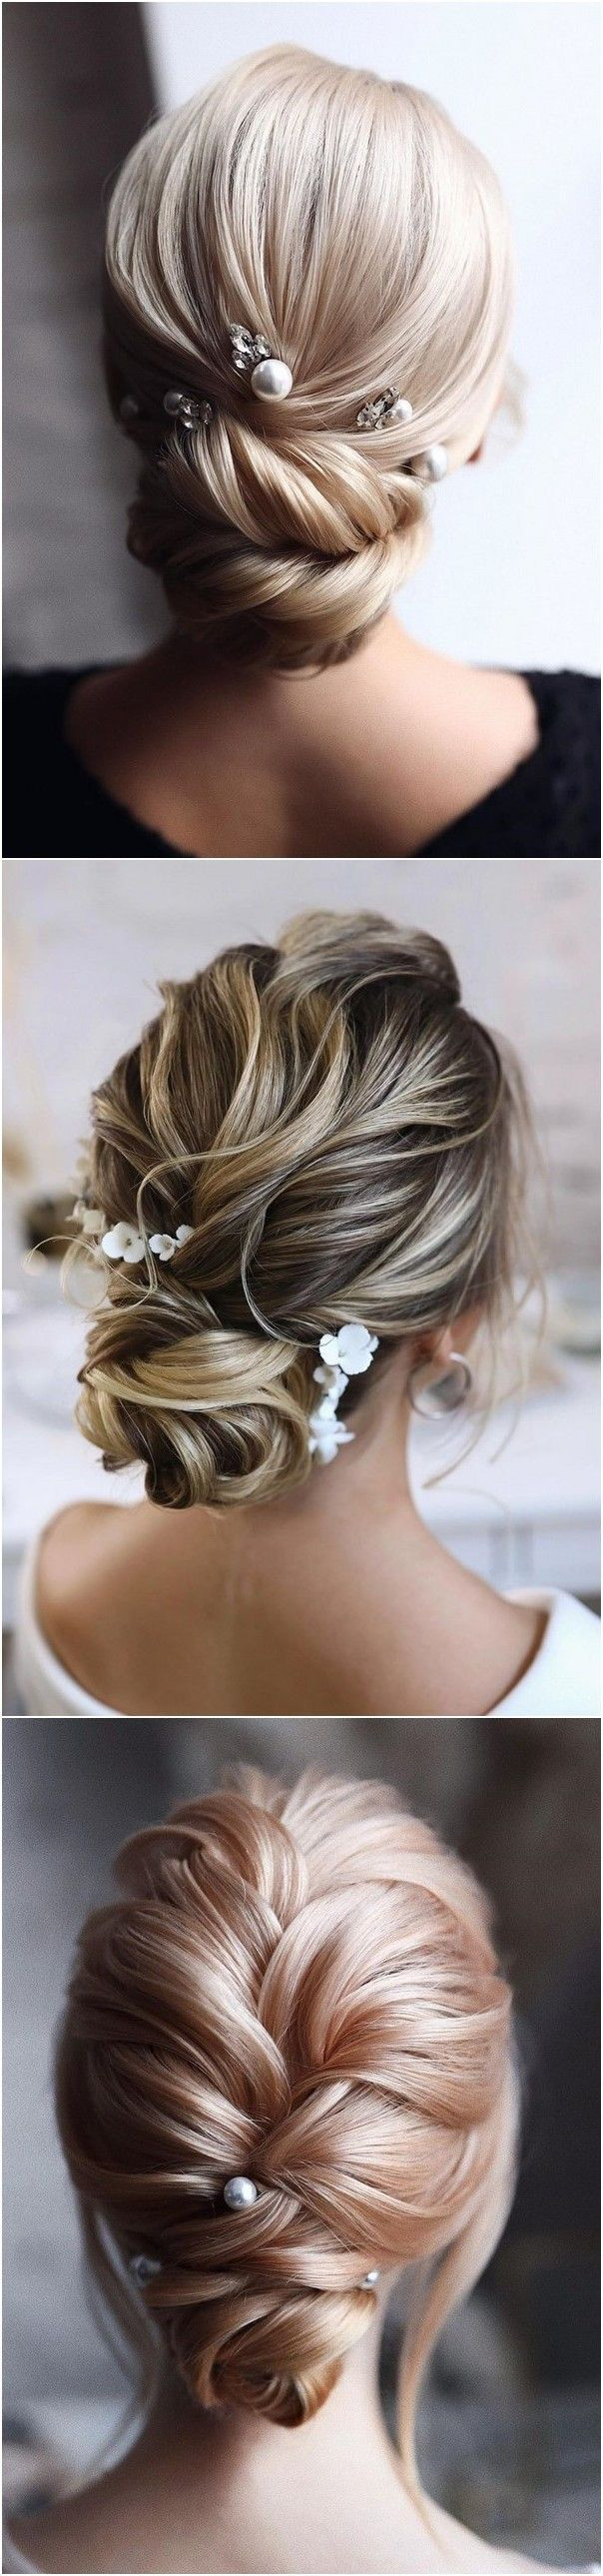 20 Trendy Low Bun Wedding Updos and Hairstyles | Retro wedding hair, Diy wedding hair, Boho ...